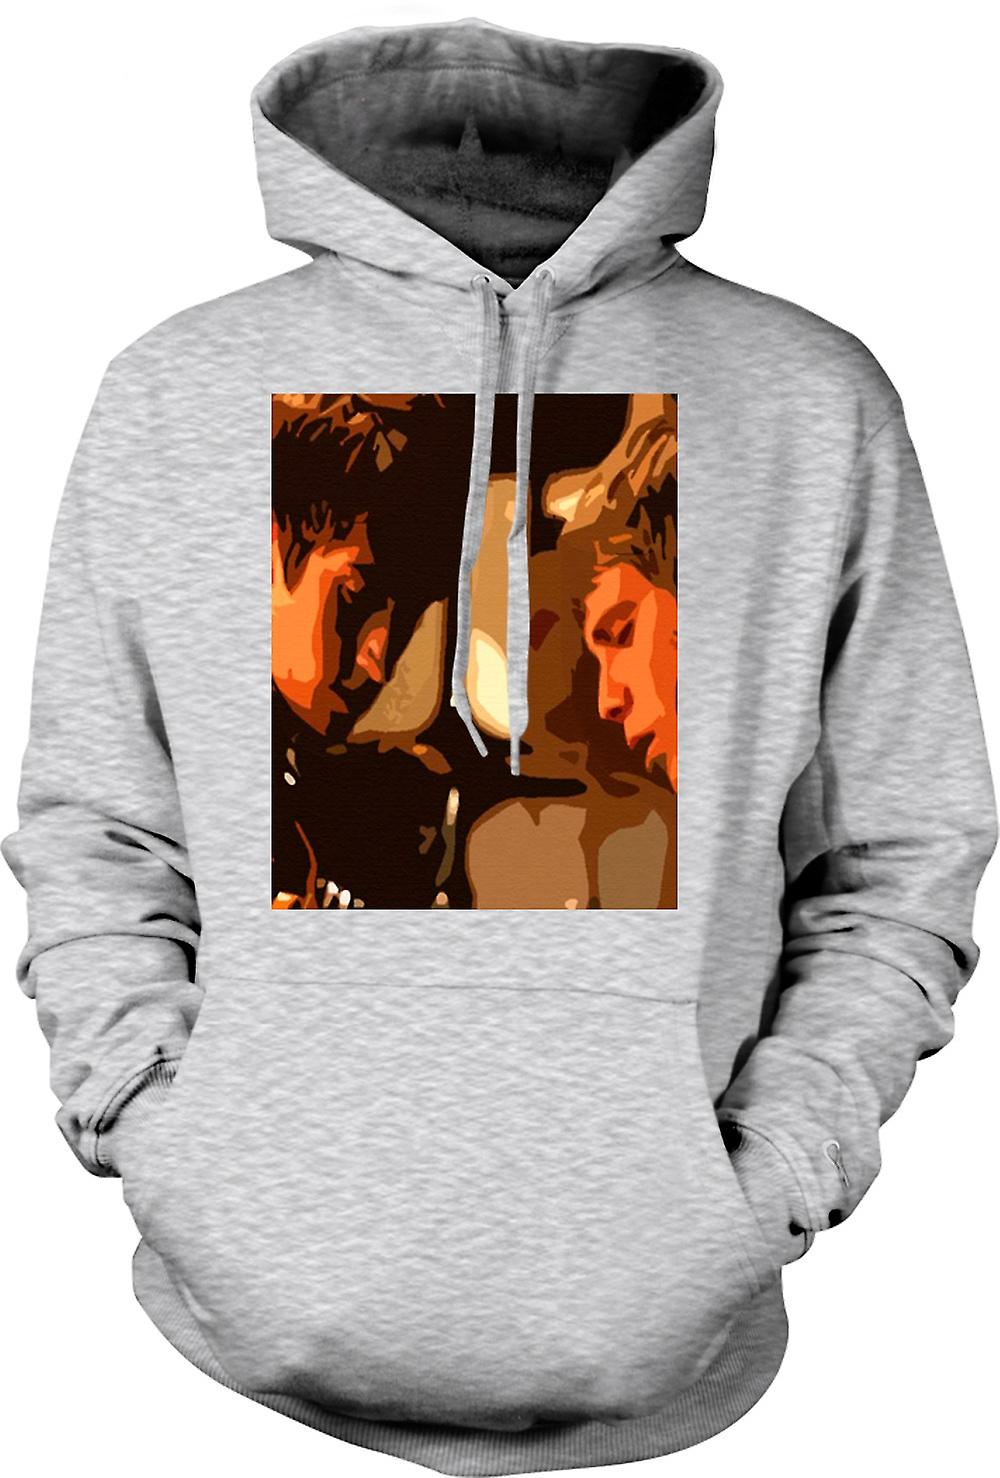 Mens Hoodie - Arctic Monkeys - Music